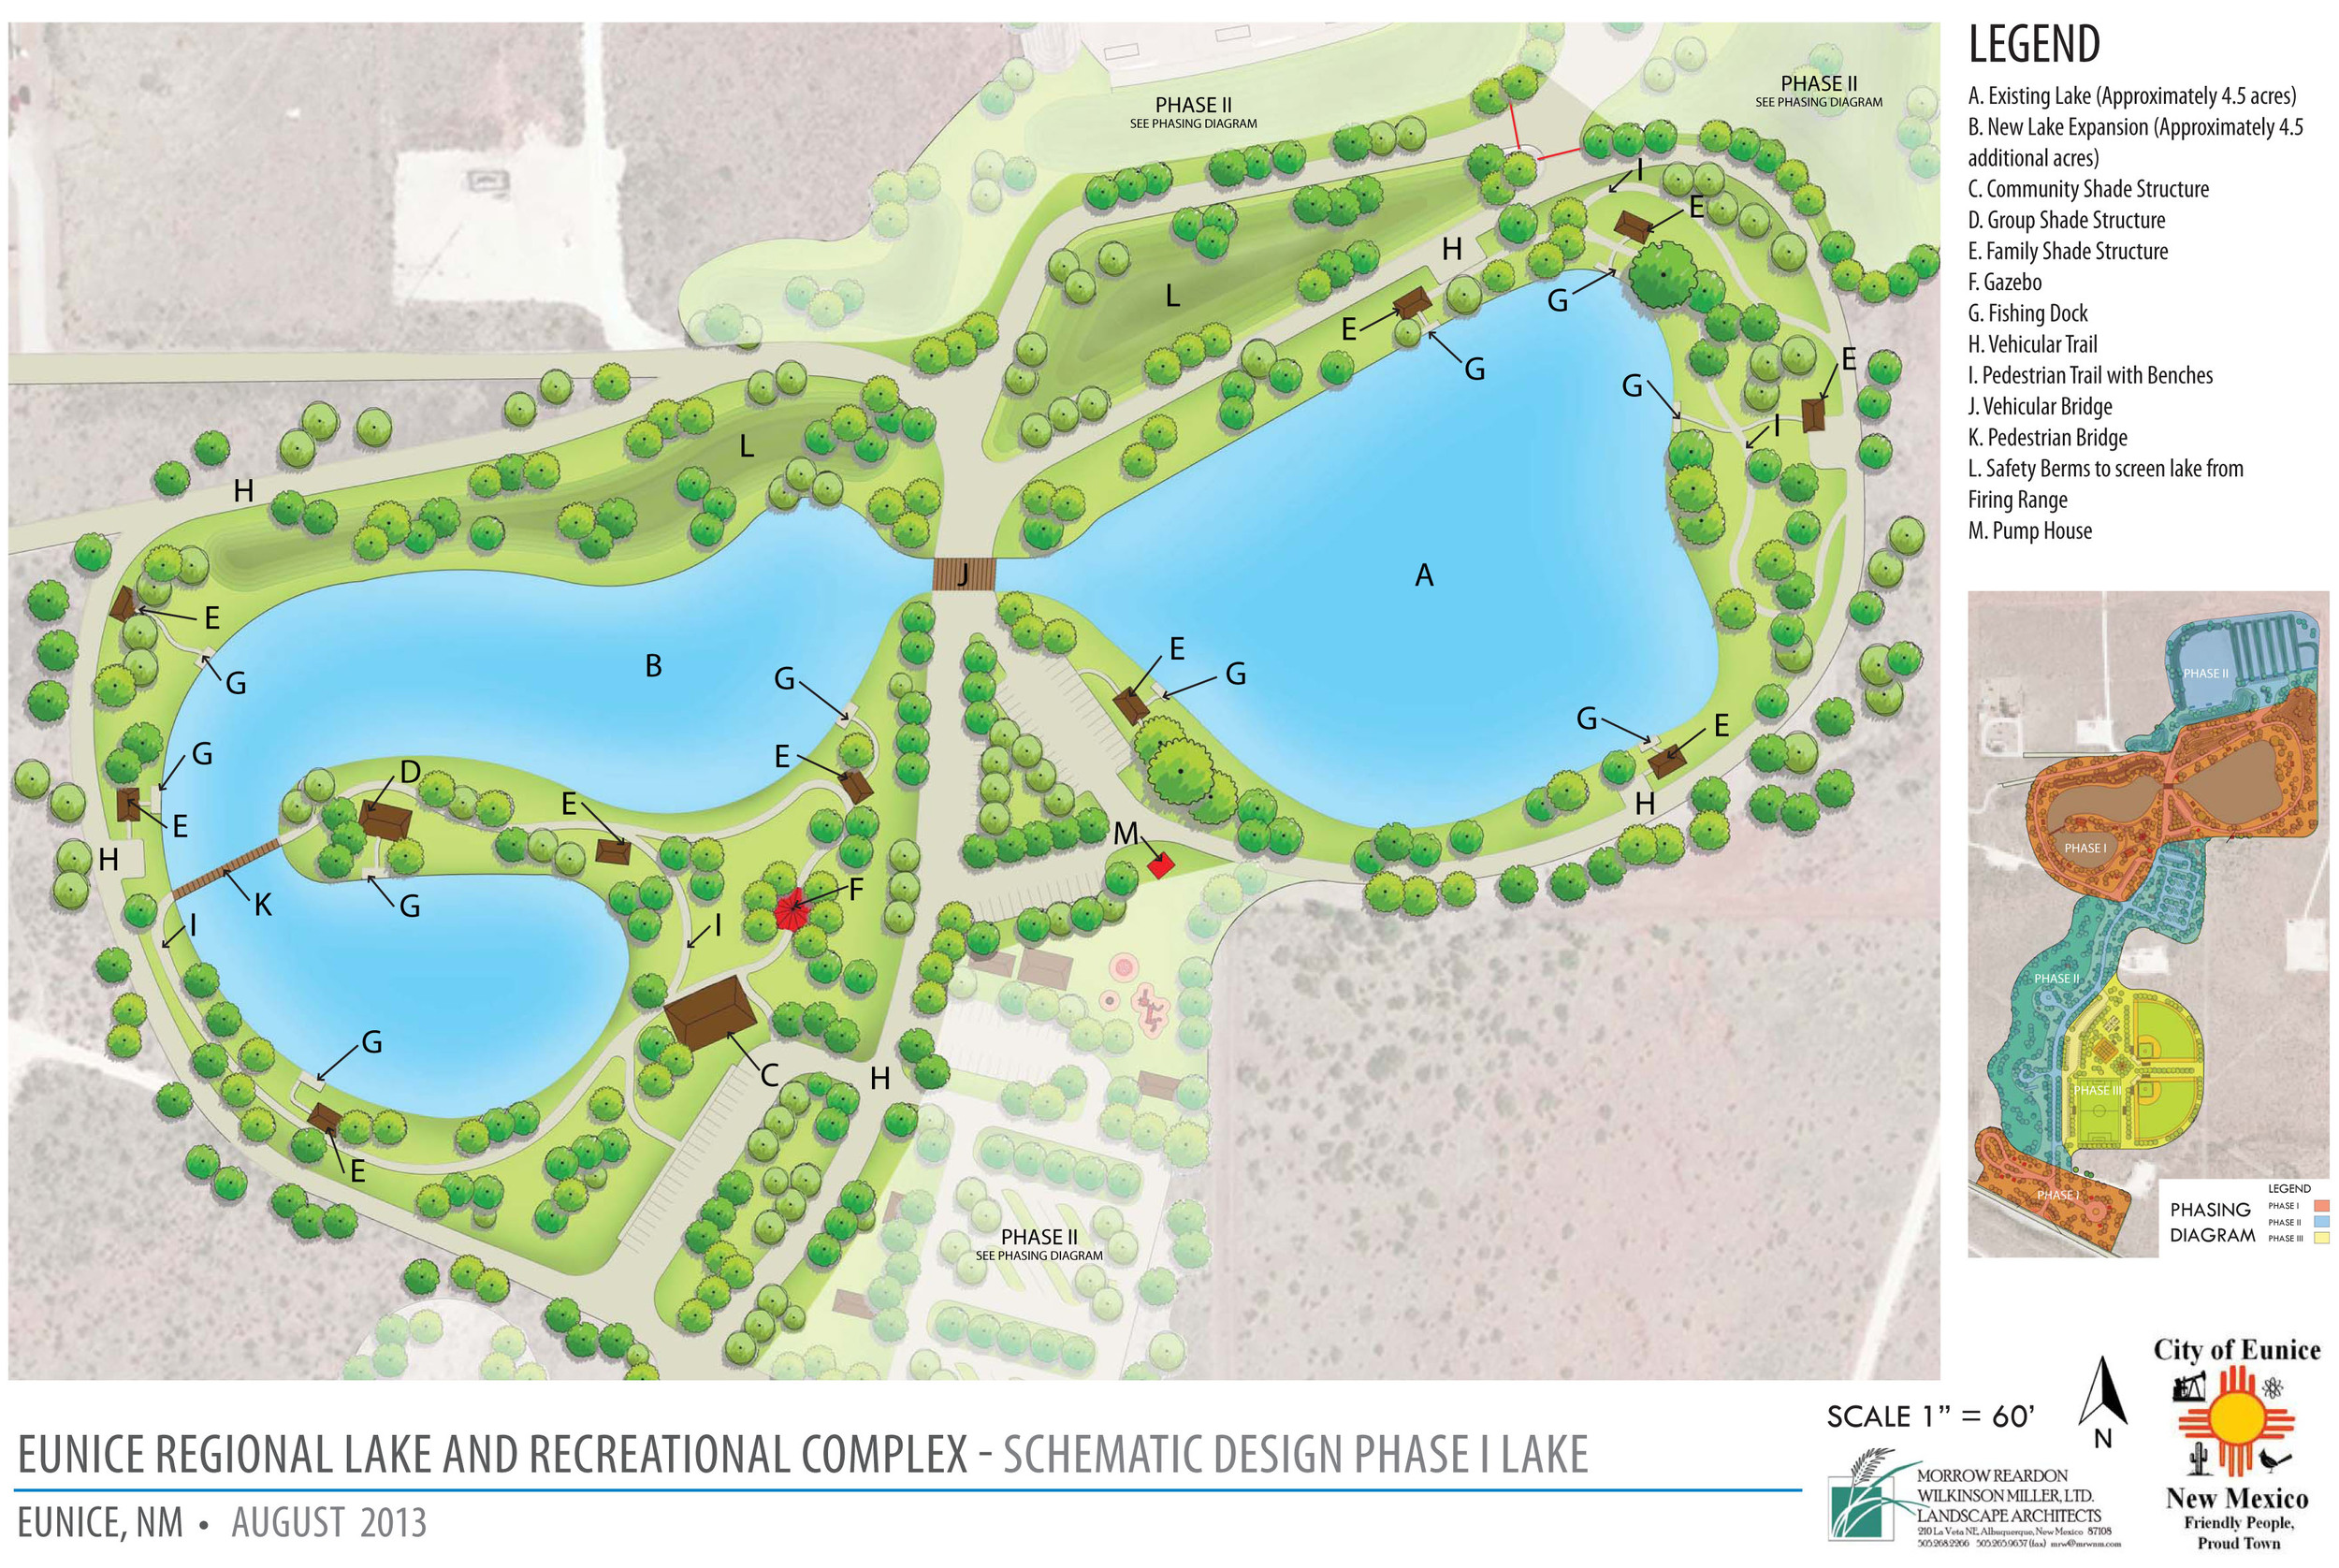 Eunice Regional Lake Recreation Complex Schematic Design for Lake Area